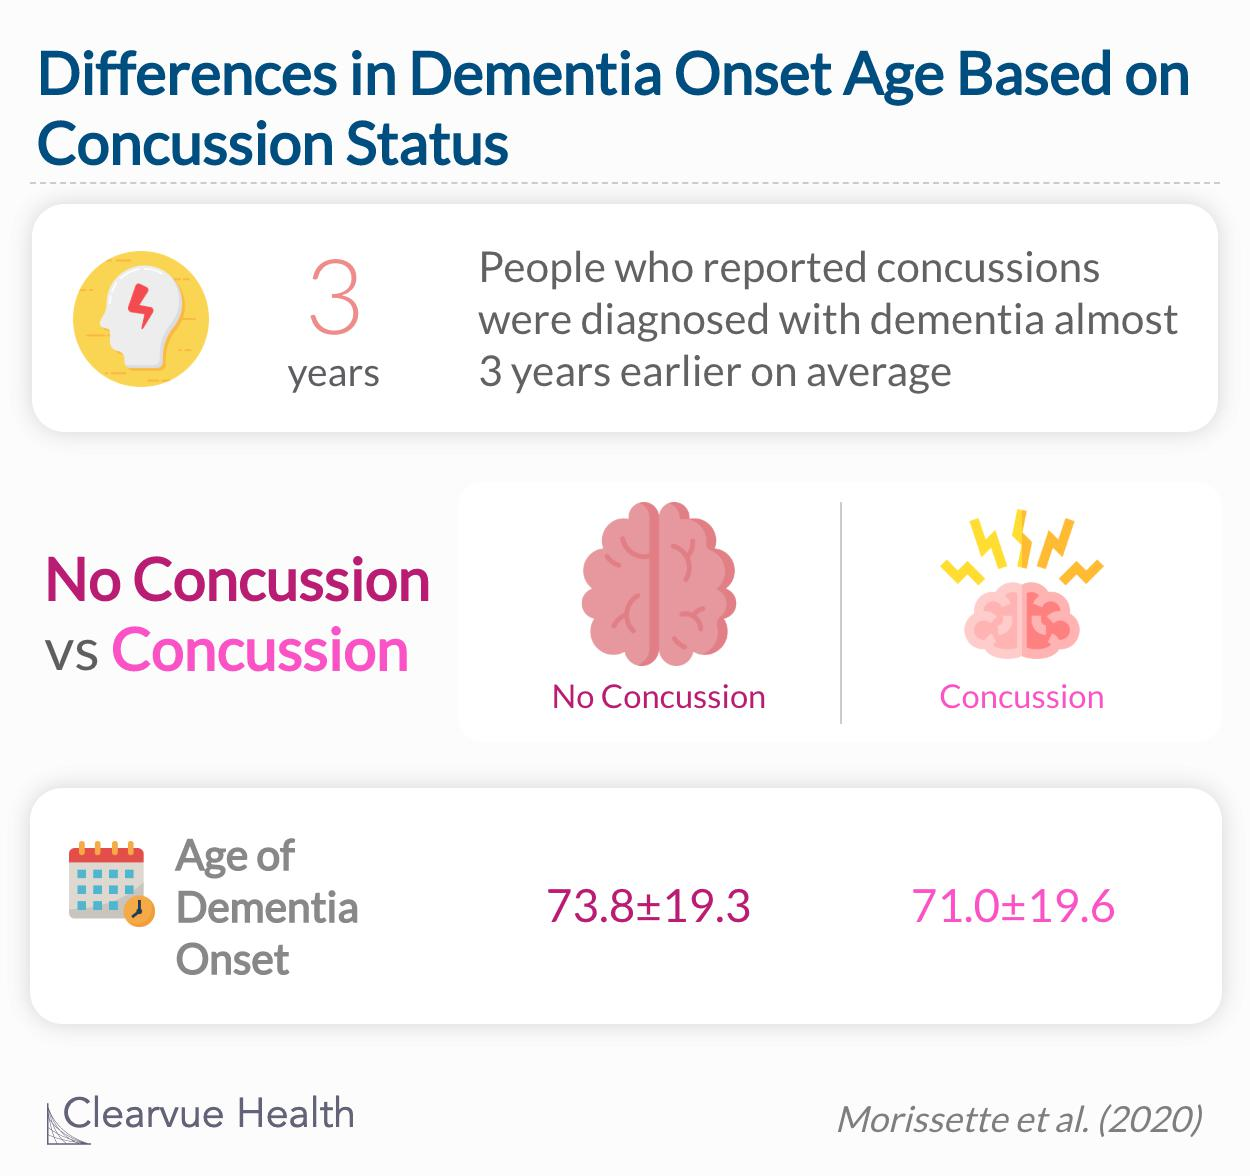 People who reported concussions were diagnosed with dementia almost 3 years earlier on average